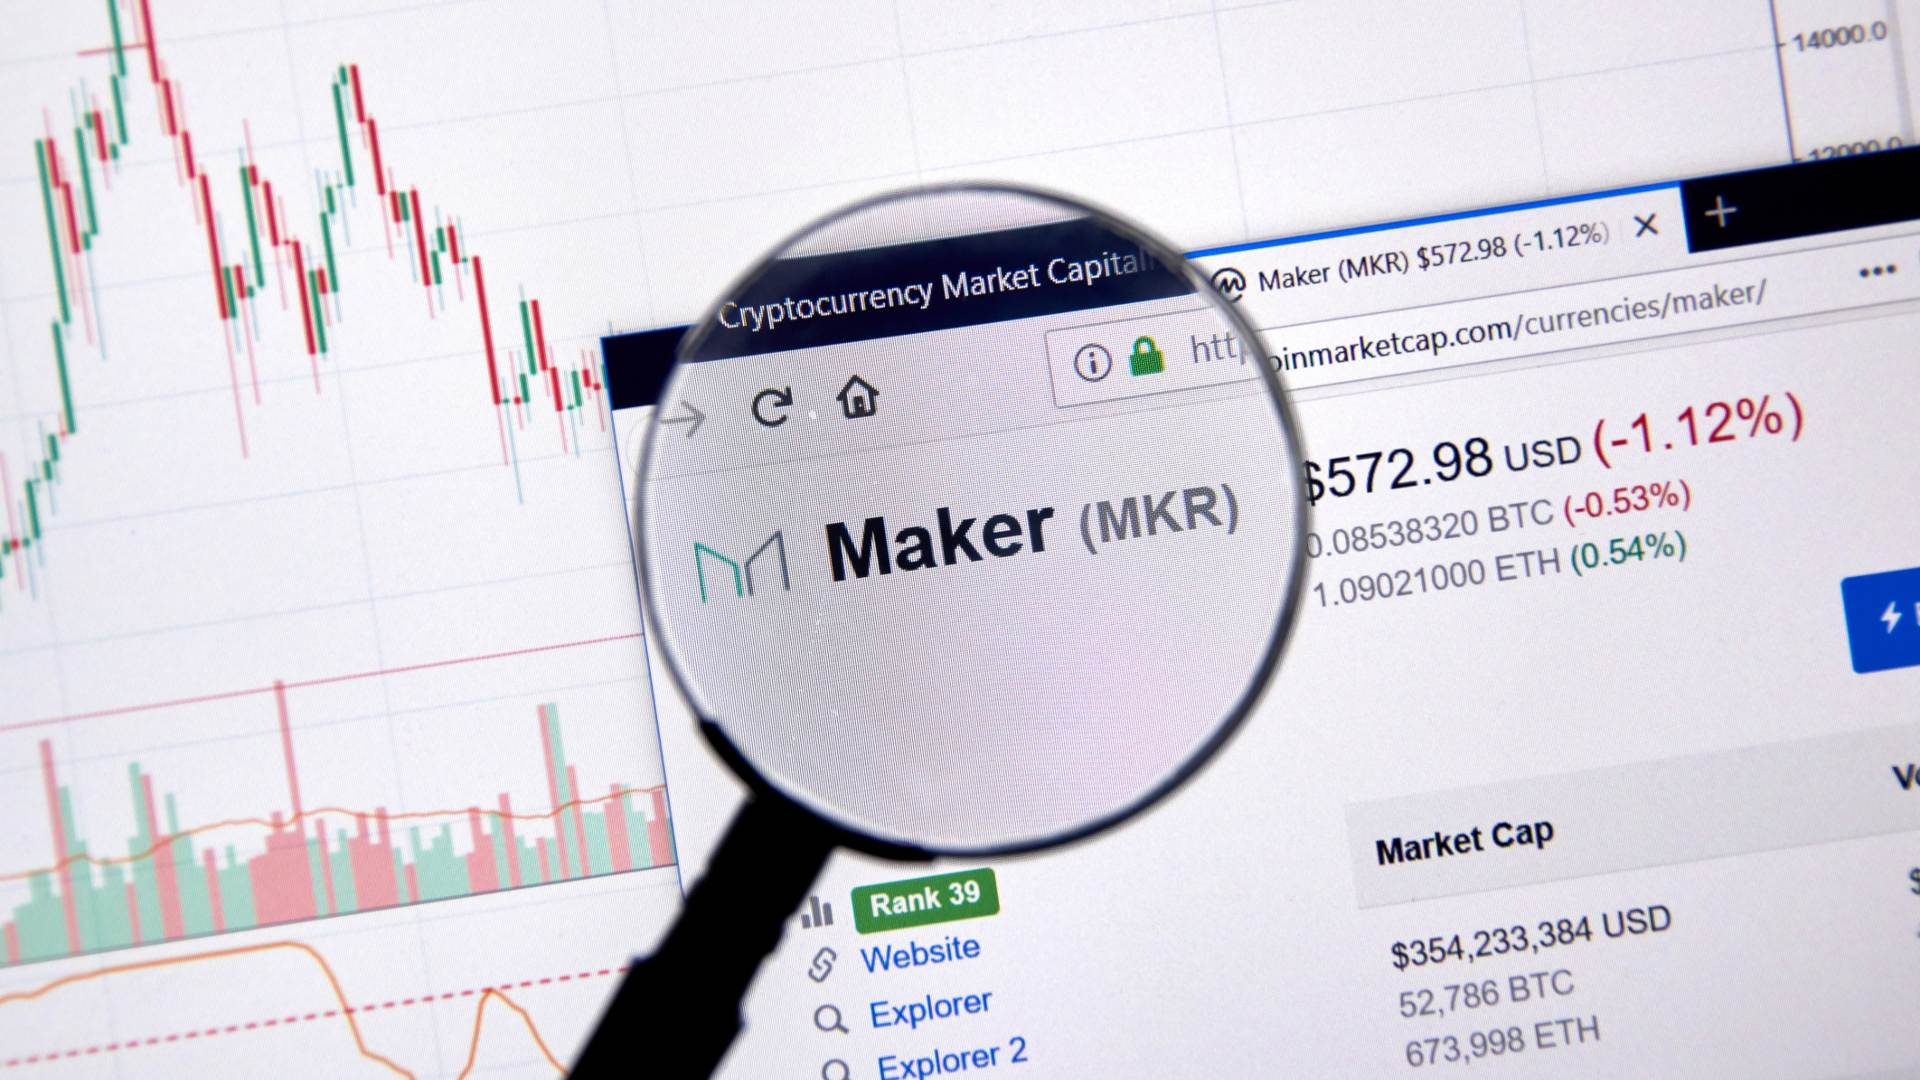 Nuovi update da MakerDAO mentre DAI supera SAI